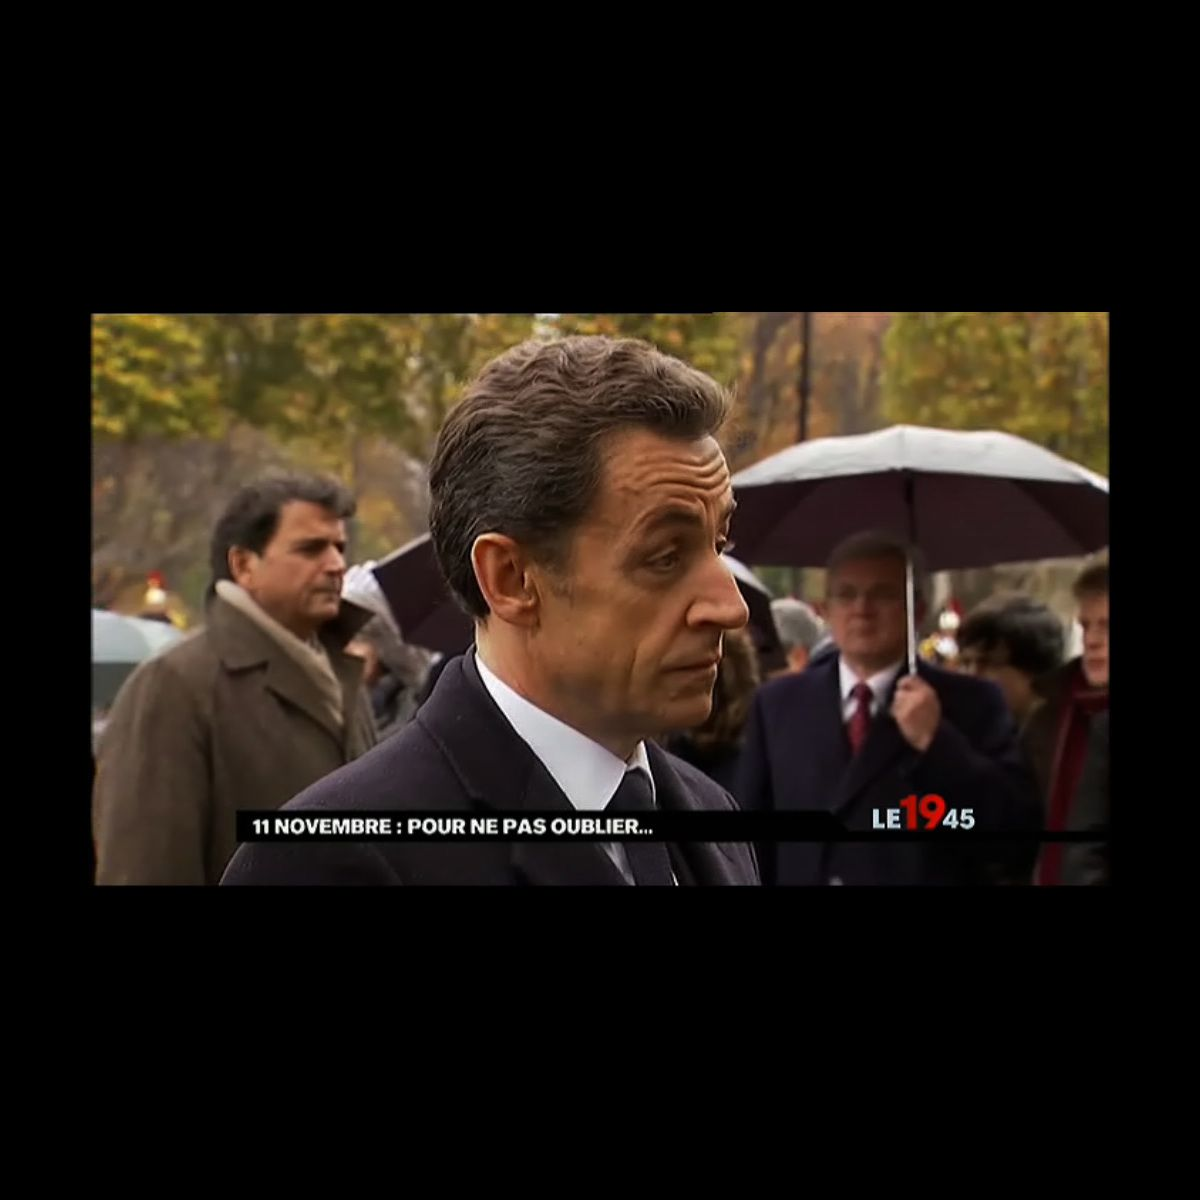 zapping nicolas sarkozy agac lors des c r monies du 11. Black Bedroom Furniture Sets. Home Design Ideas